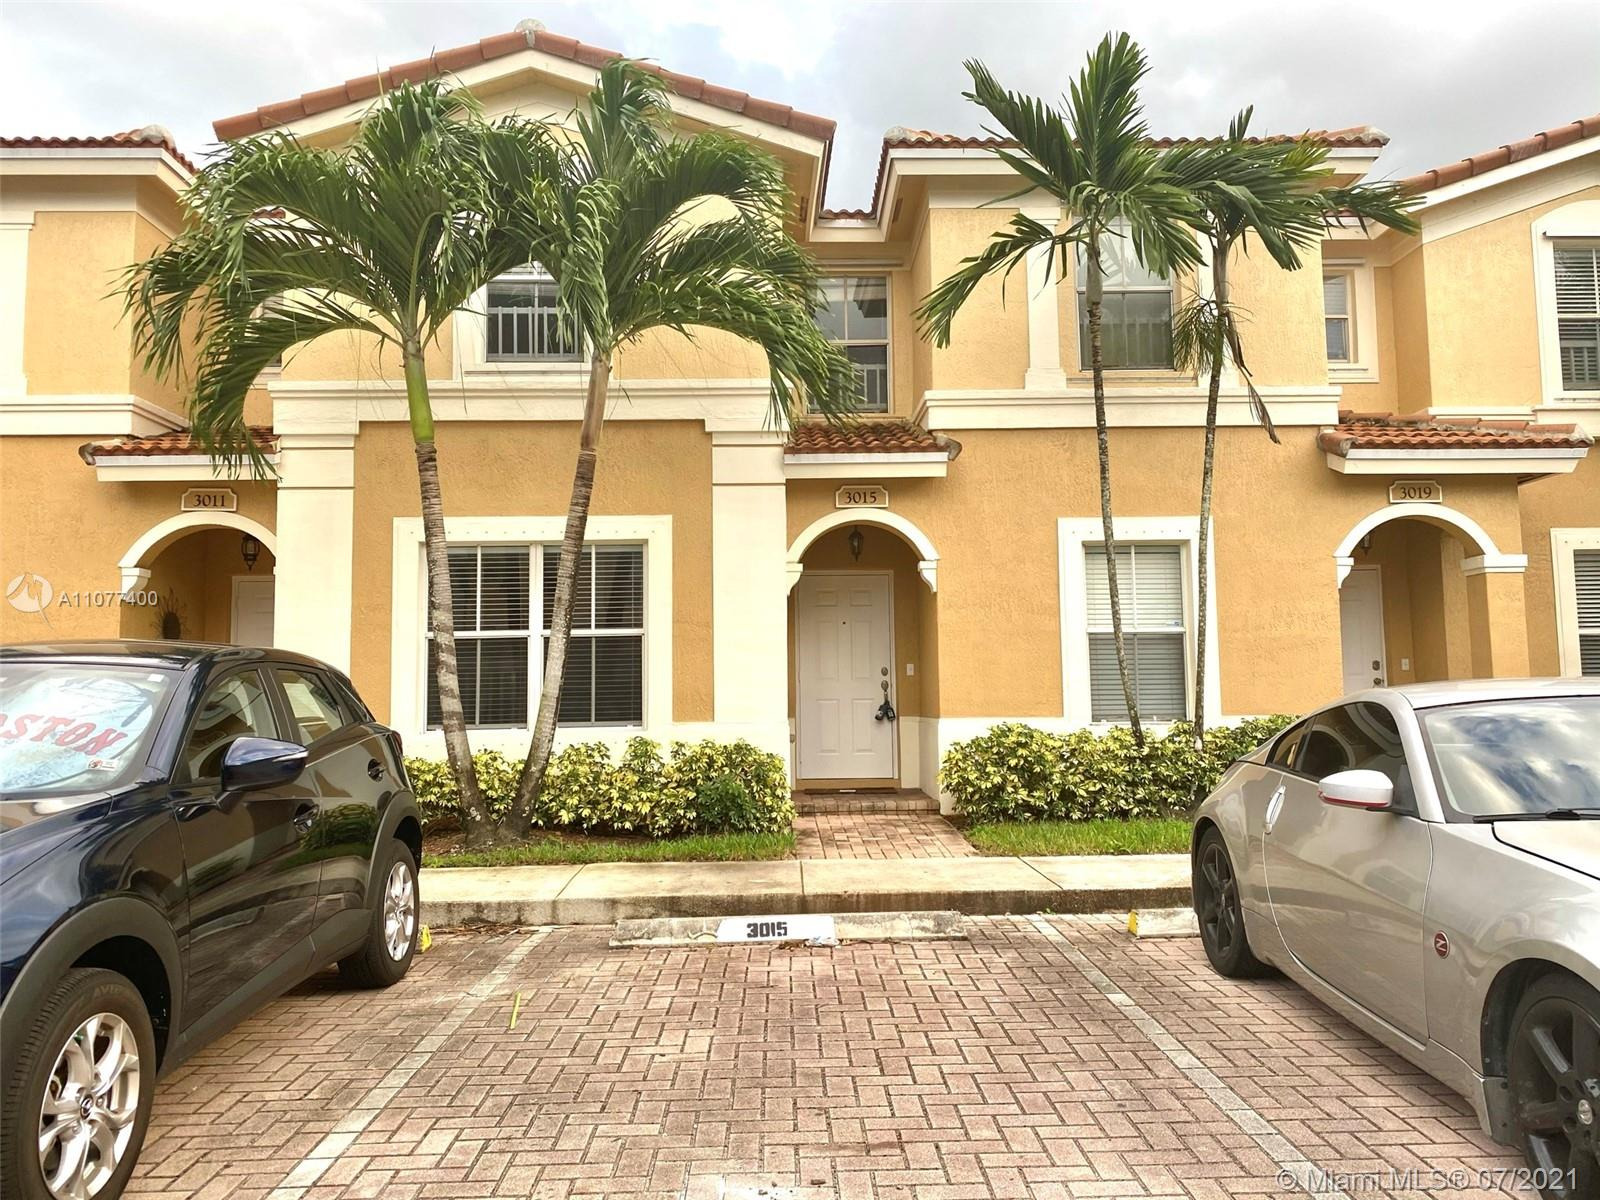 3015 SW 129th Ter #153 For Sale A11077400, FL